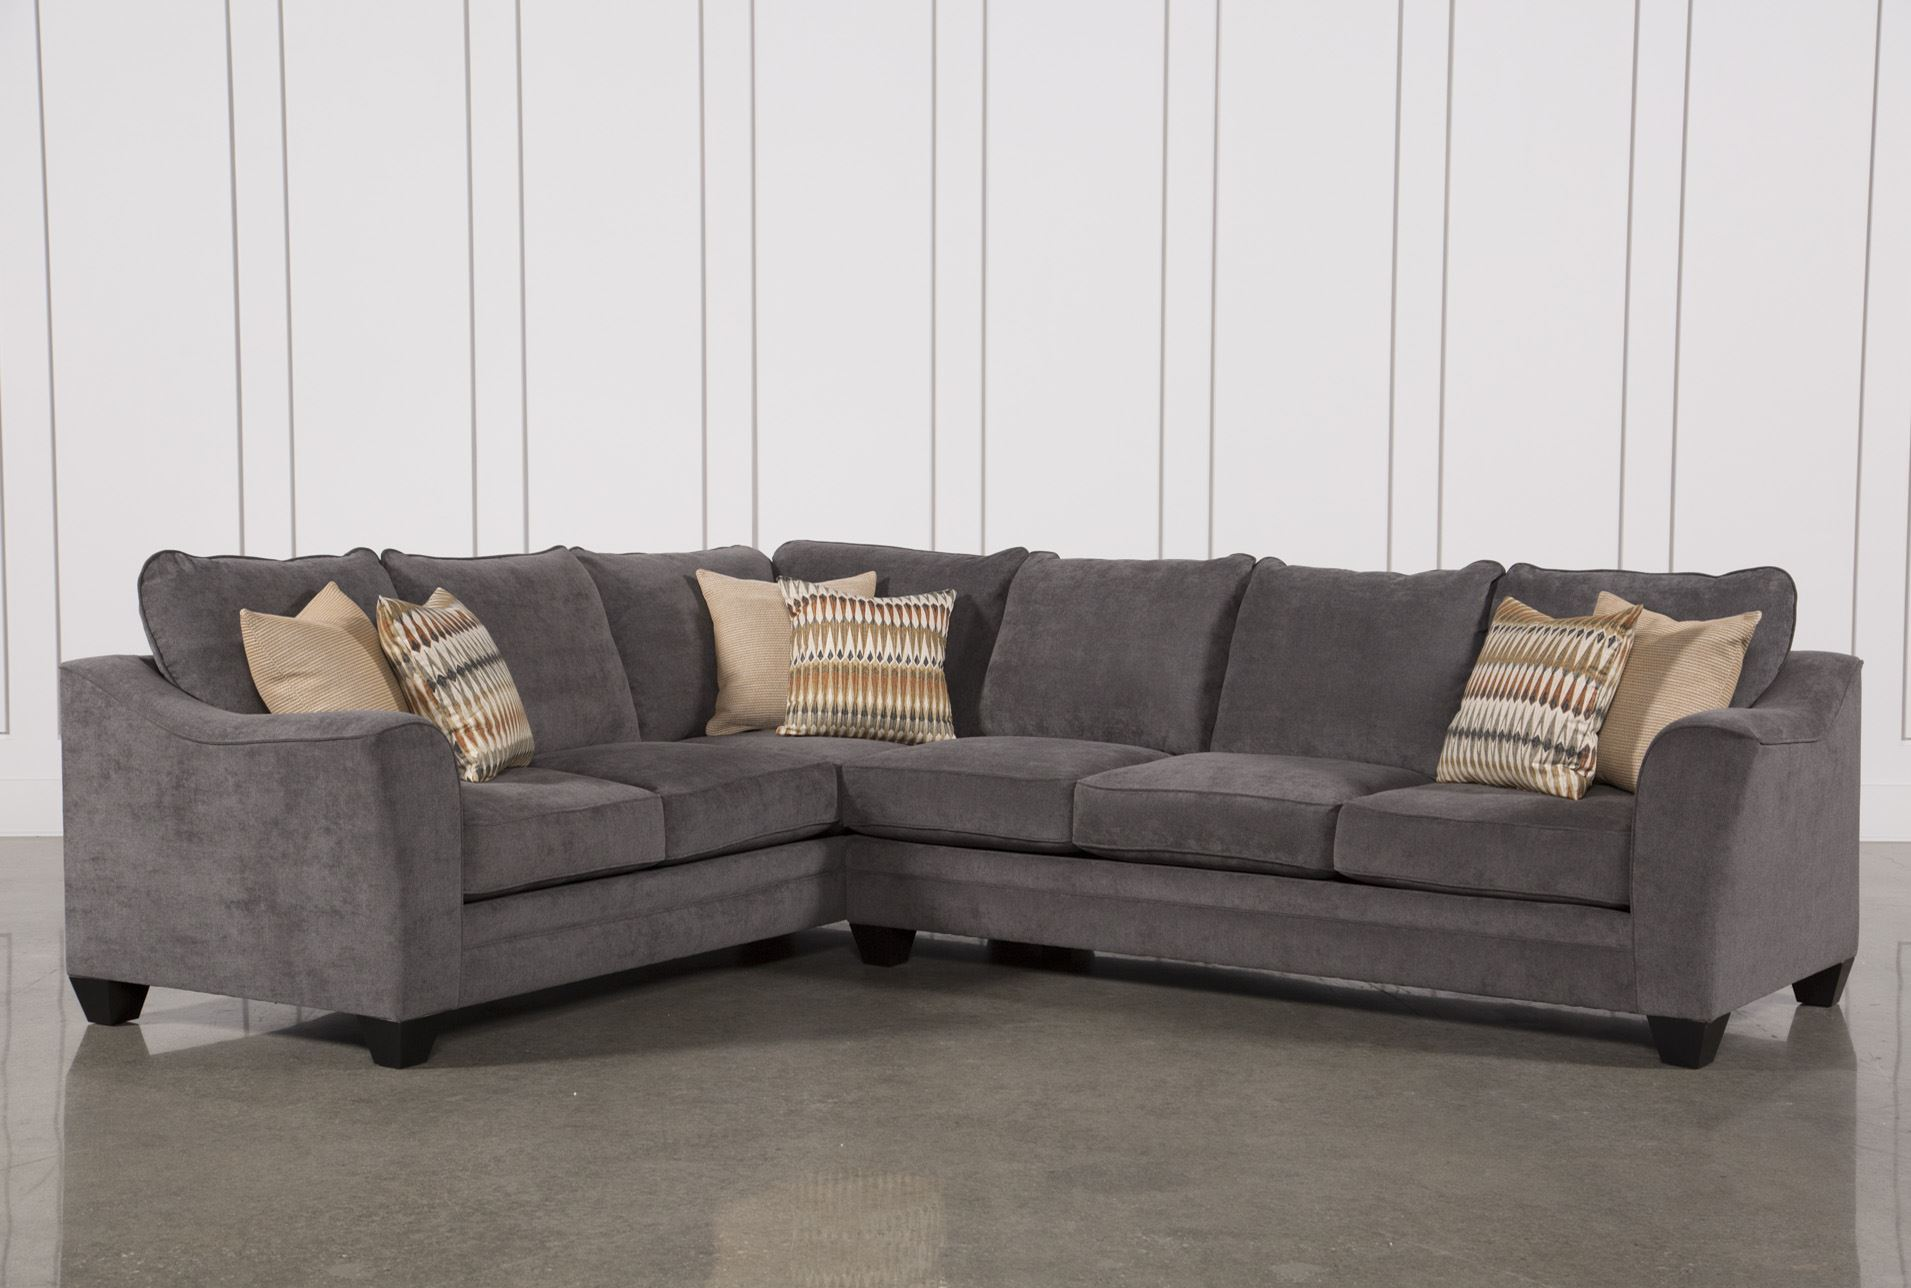 Charmant Mesa Foam 2 Piece Sectional (Qty: 1) Has Been Successfully Added To Your  Cart.